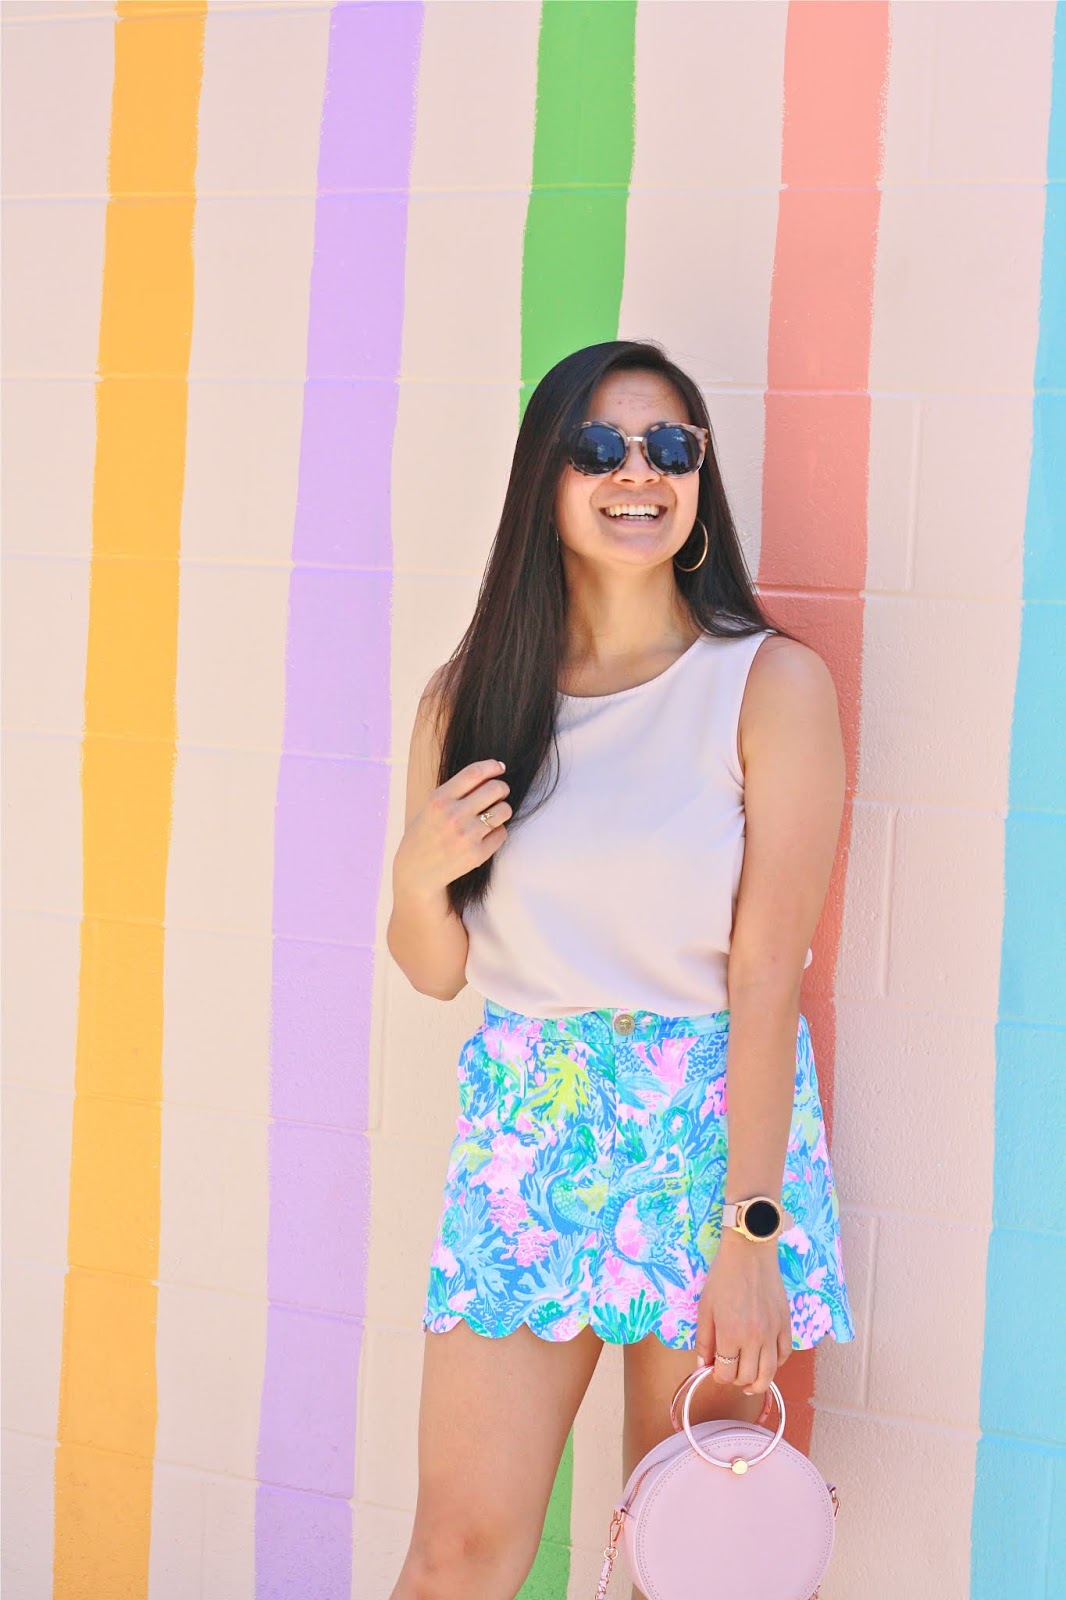 Jeni's Ice Cream striped wall - Lilly Pulitzer Scalloped Skirt - Summer Outfit